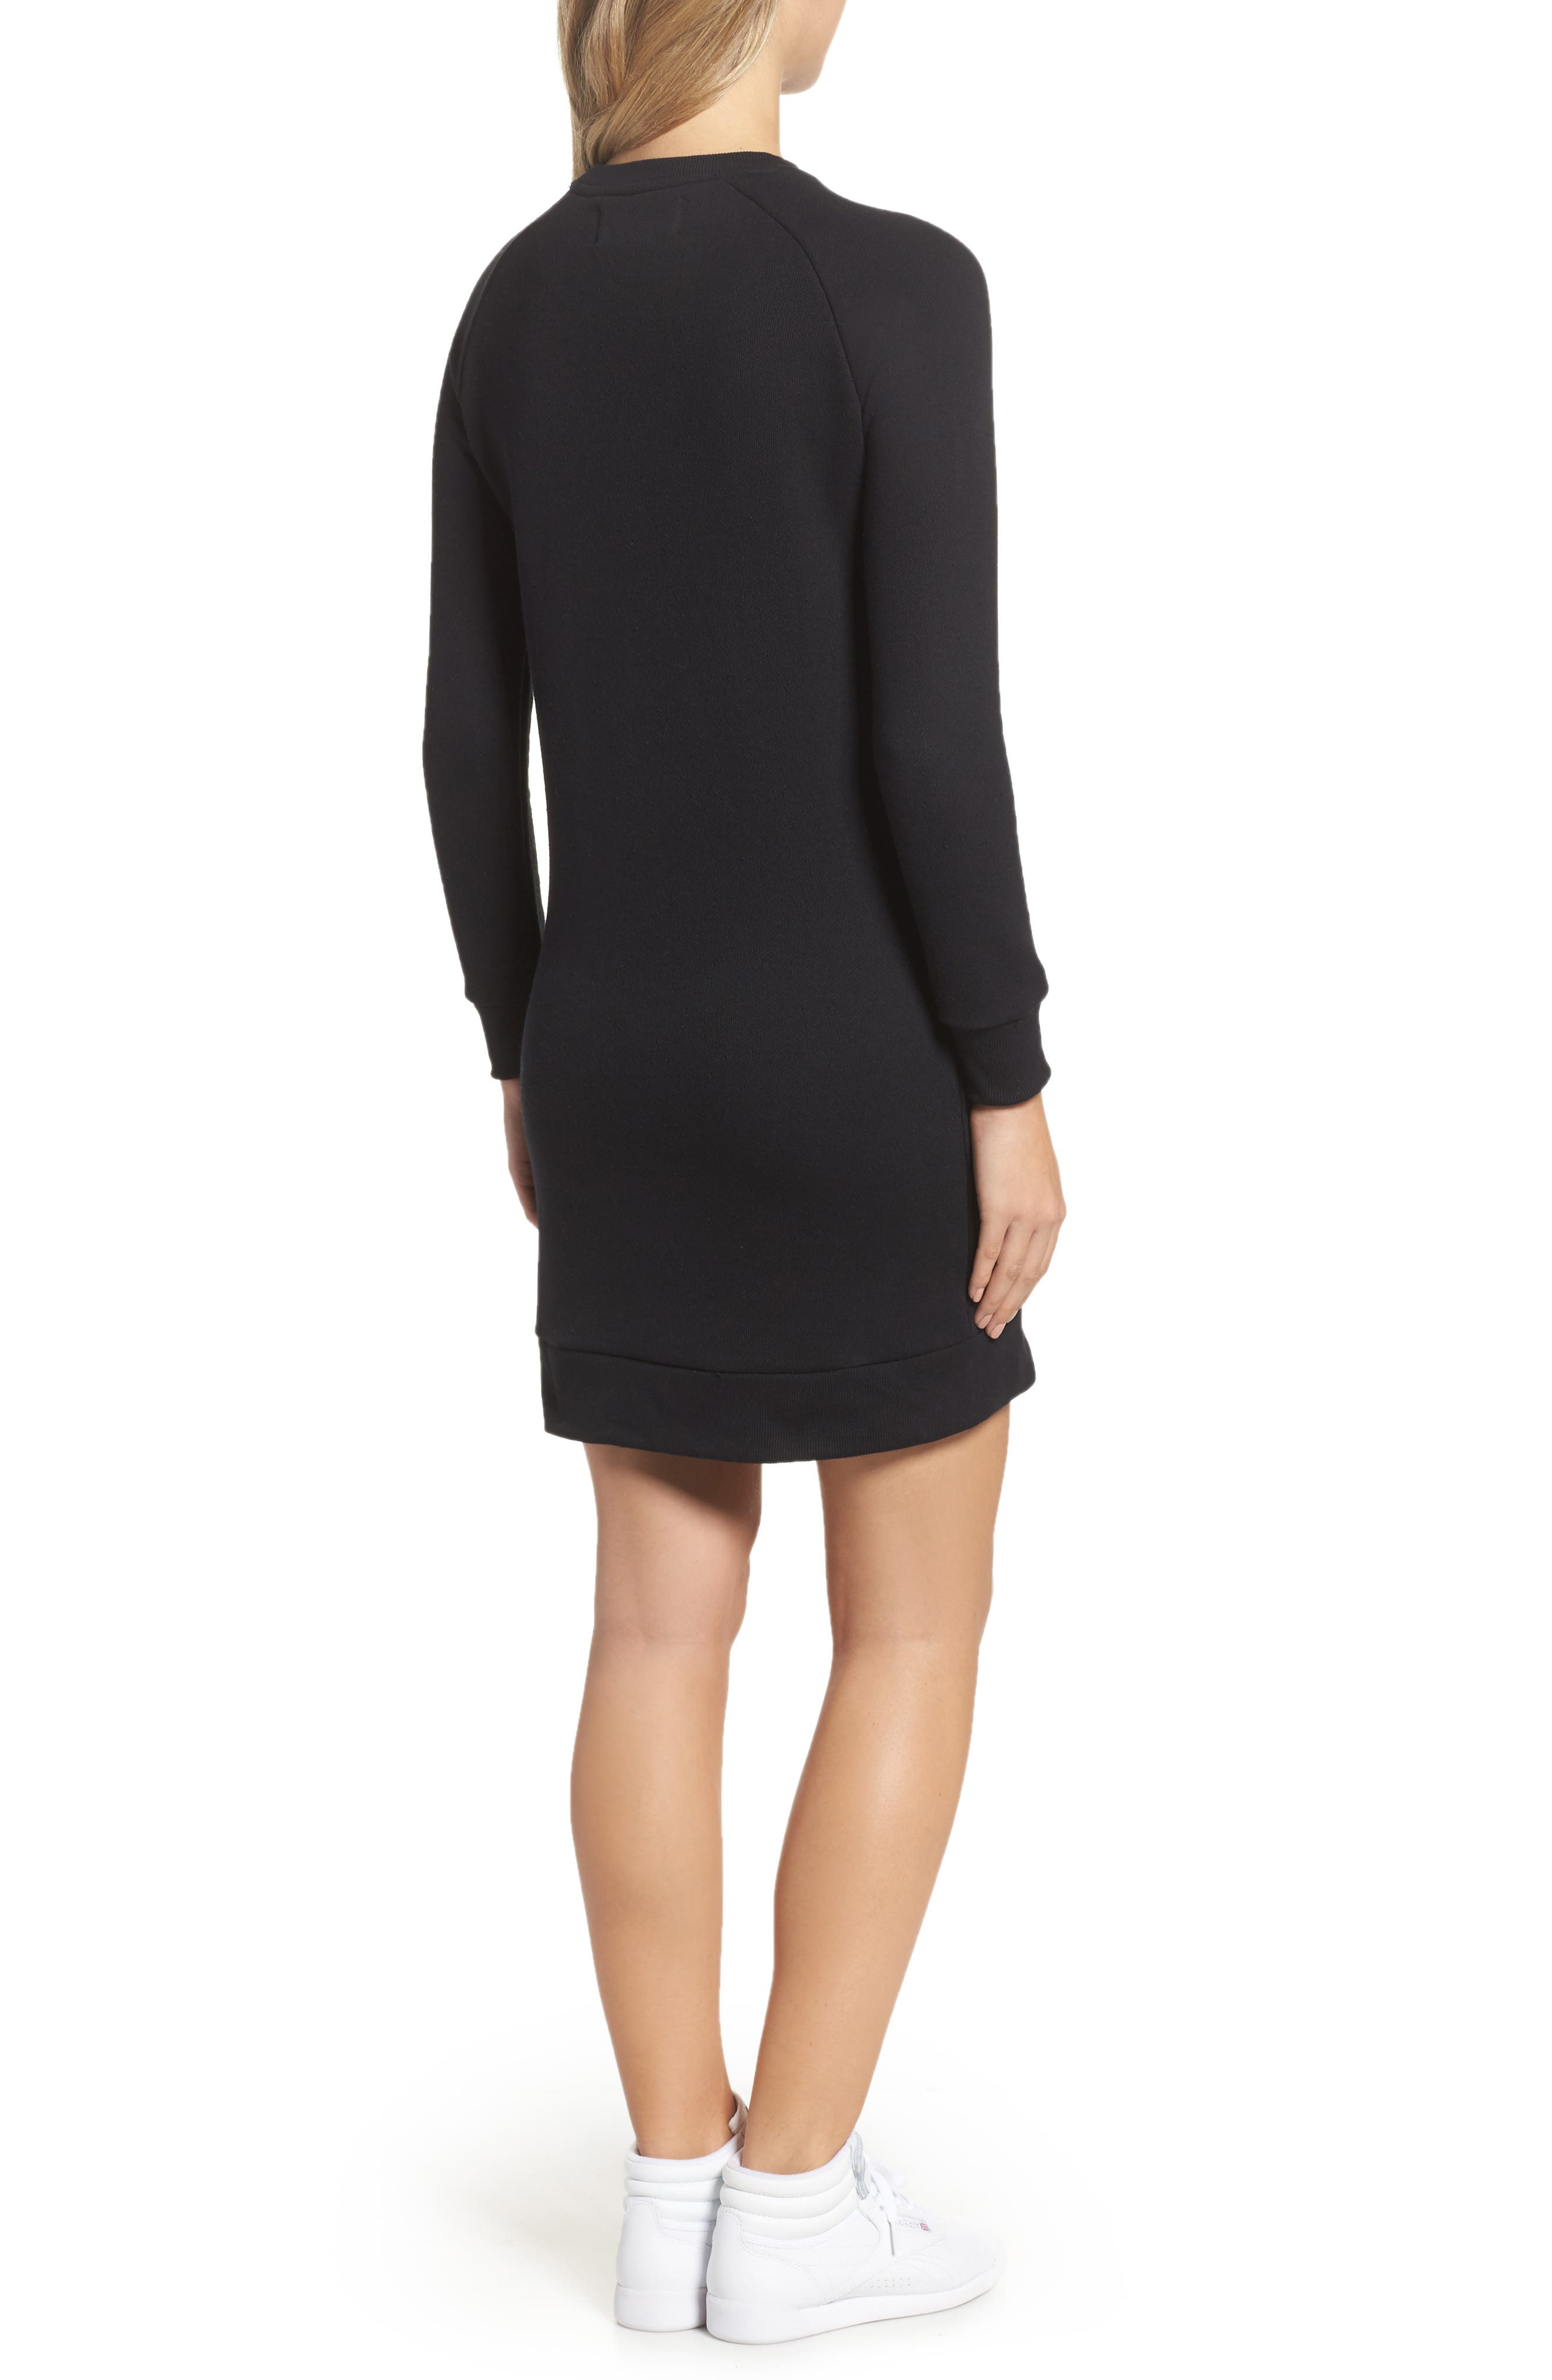 Courtney Sweatshirt Dress,                             Alternate thumbnail 2, color,                             001